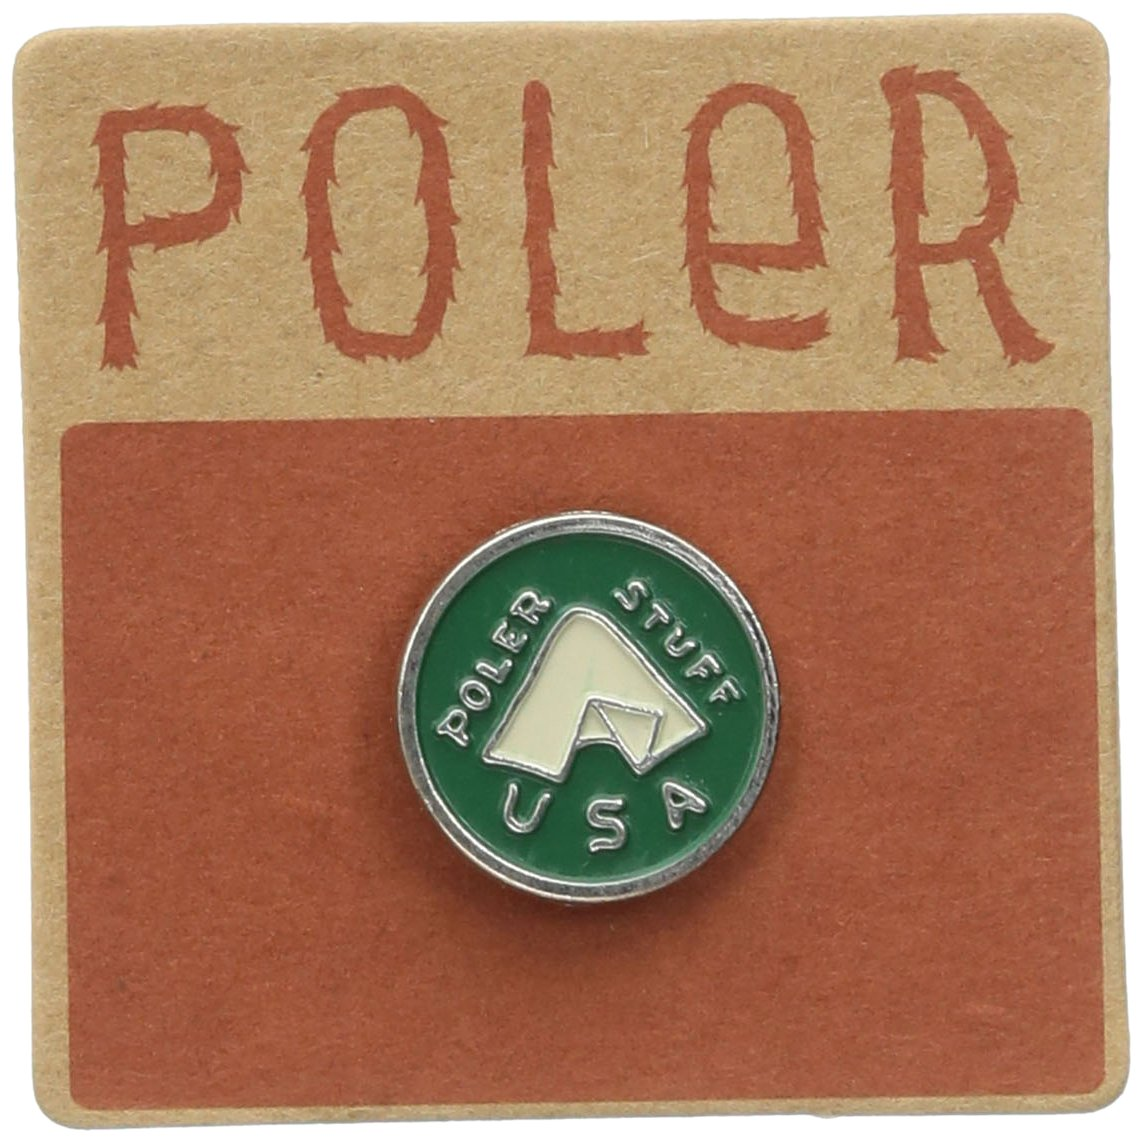 Poler Men's Tent Pin Poler Men's Tent Pin Multi One Size Poler Young Mens Child Code